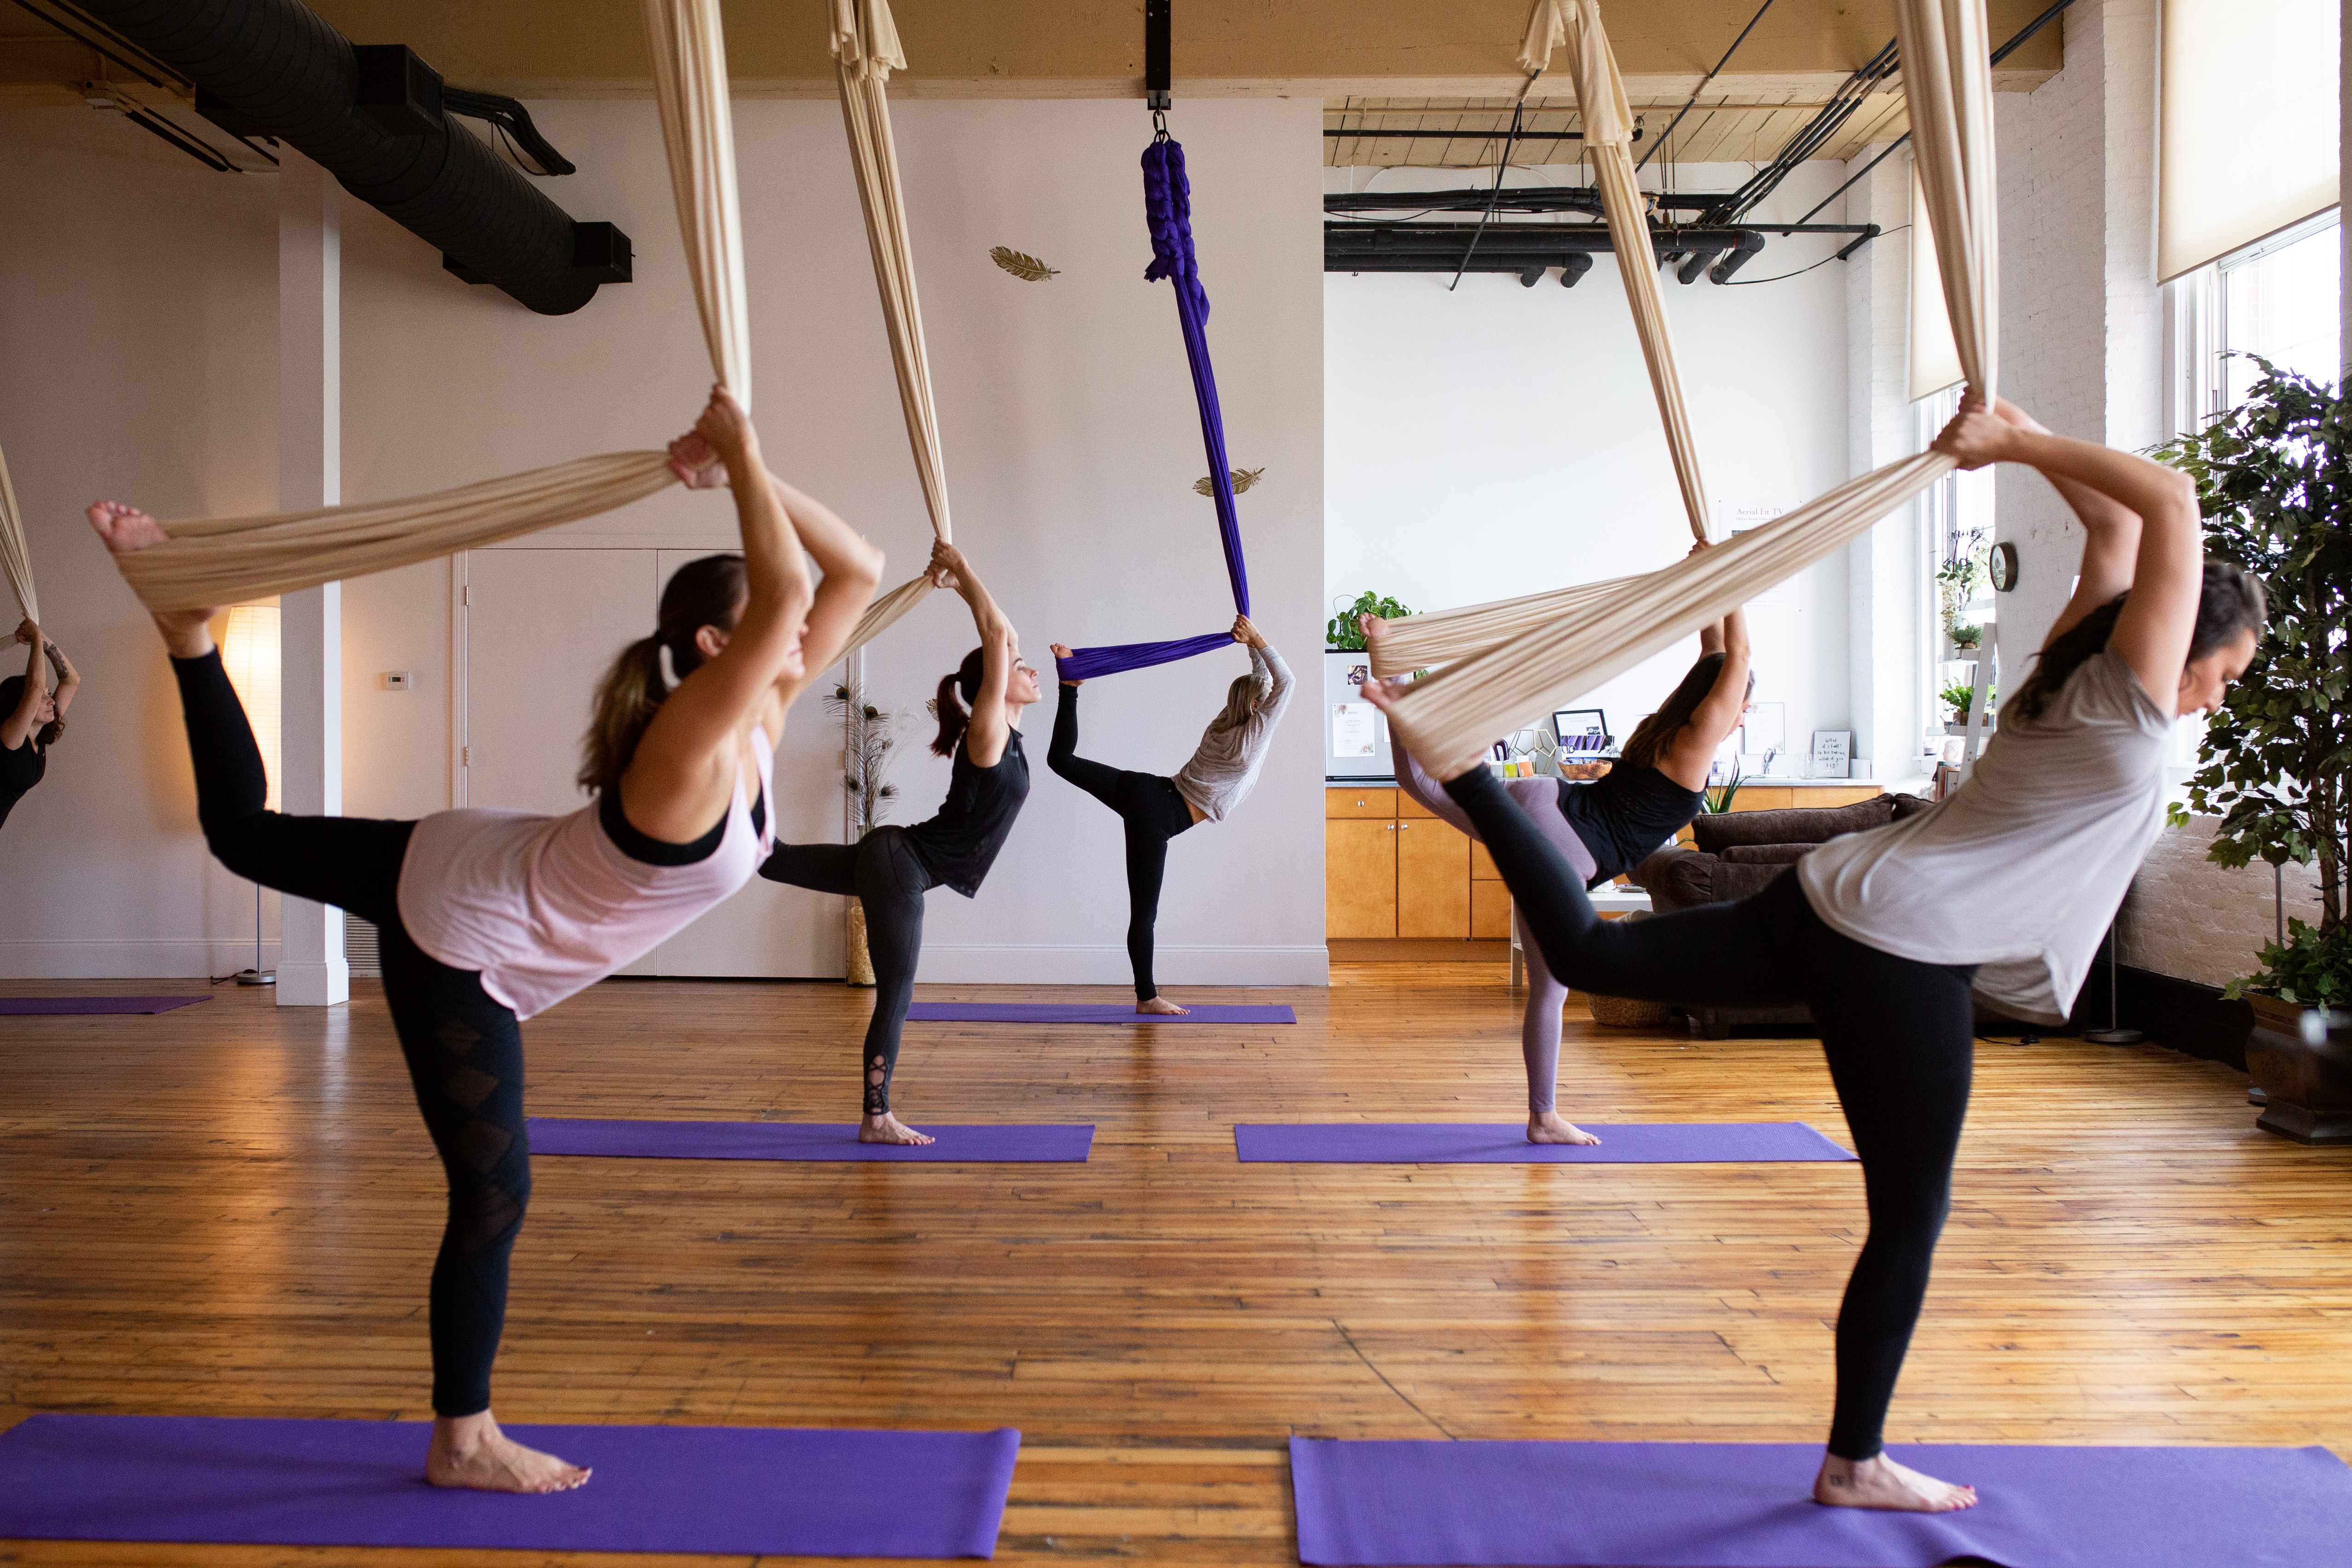 manchester nh yoga new hamphire yoga studio kama fitness karlene aerial silks best of nh aerial yoga Aerial fabric circus silks fitness pilates barre lyra hoop trapeze